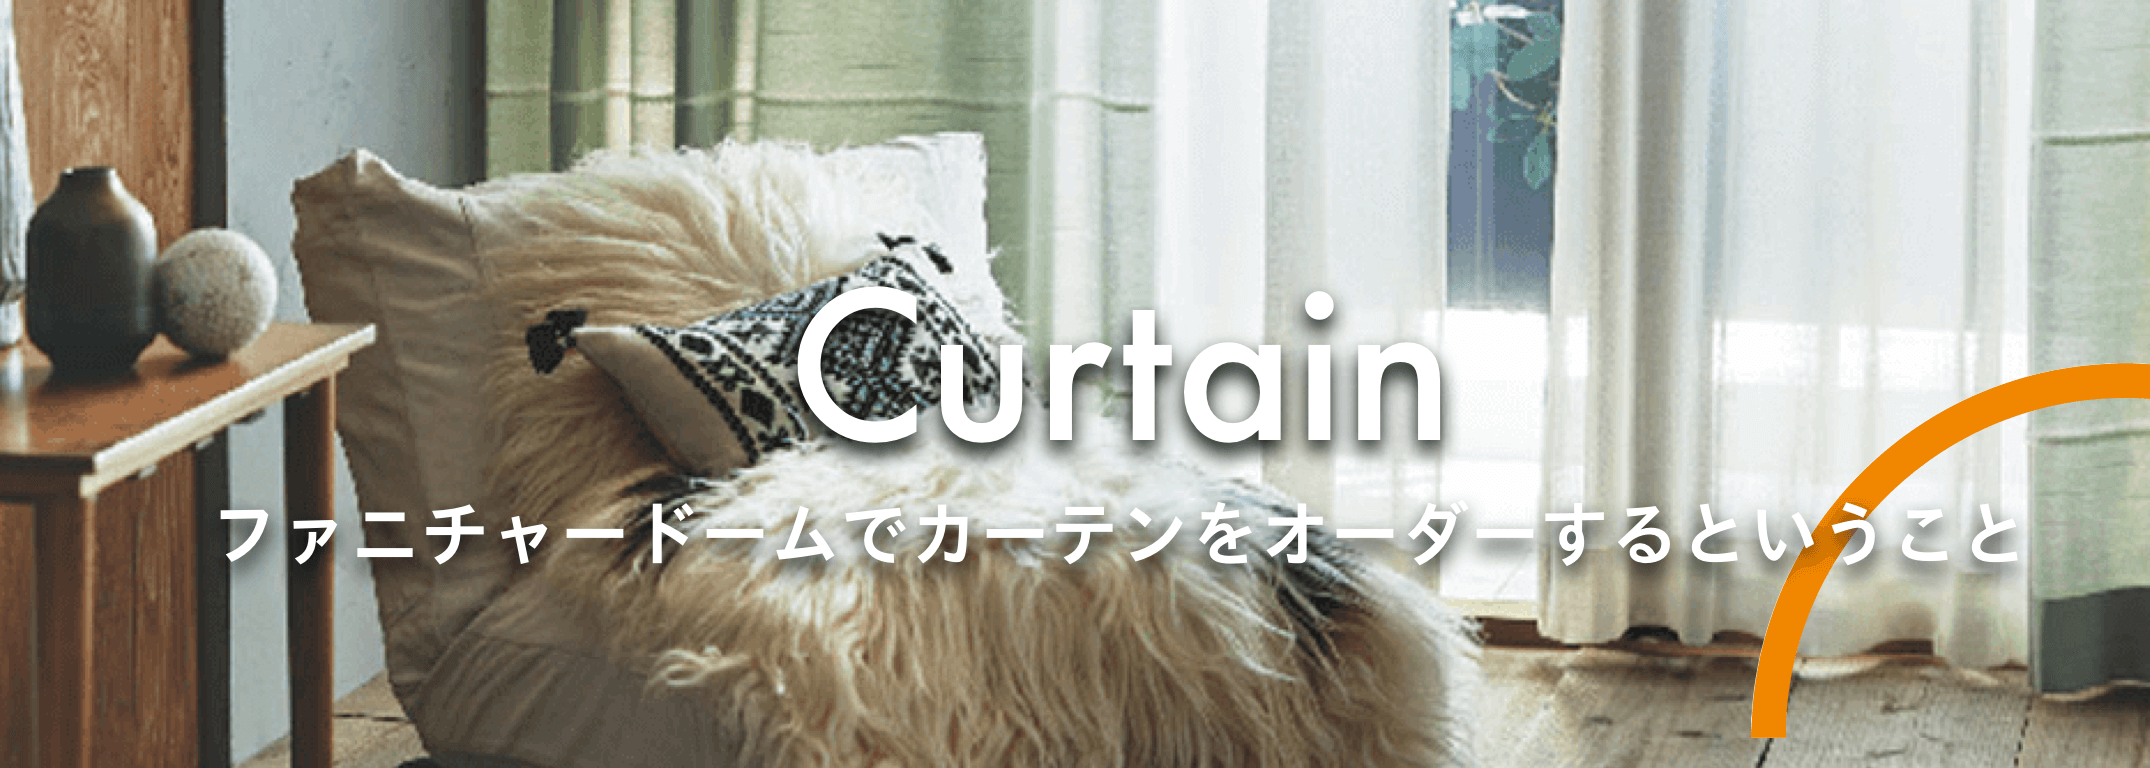 curtain_bn_big.001